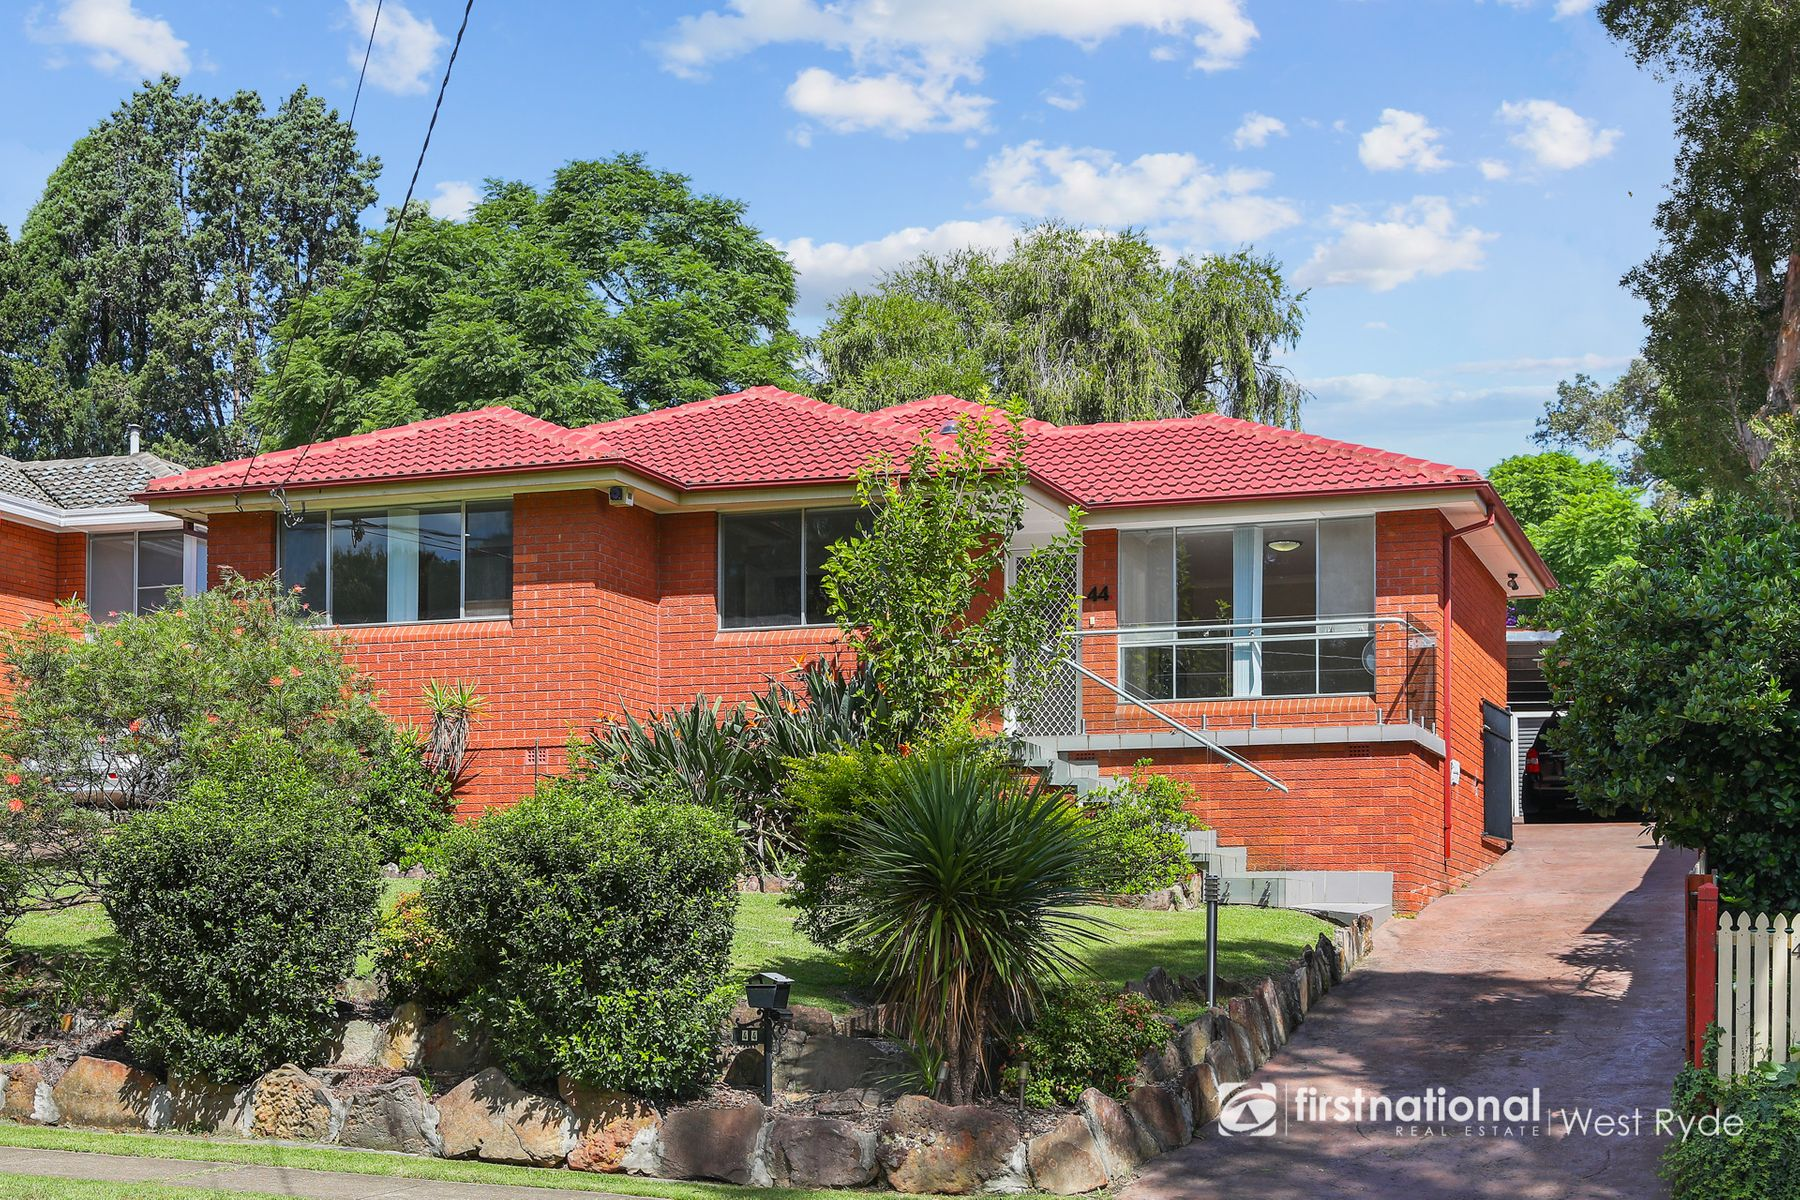 44 Peter Parade, Old Toongabbie, NSW 2146